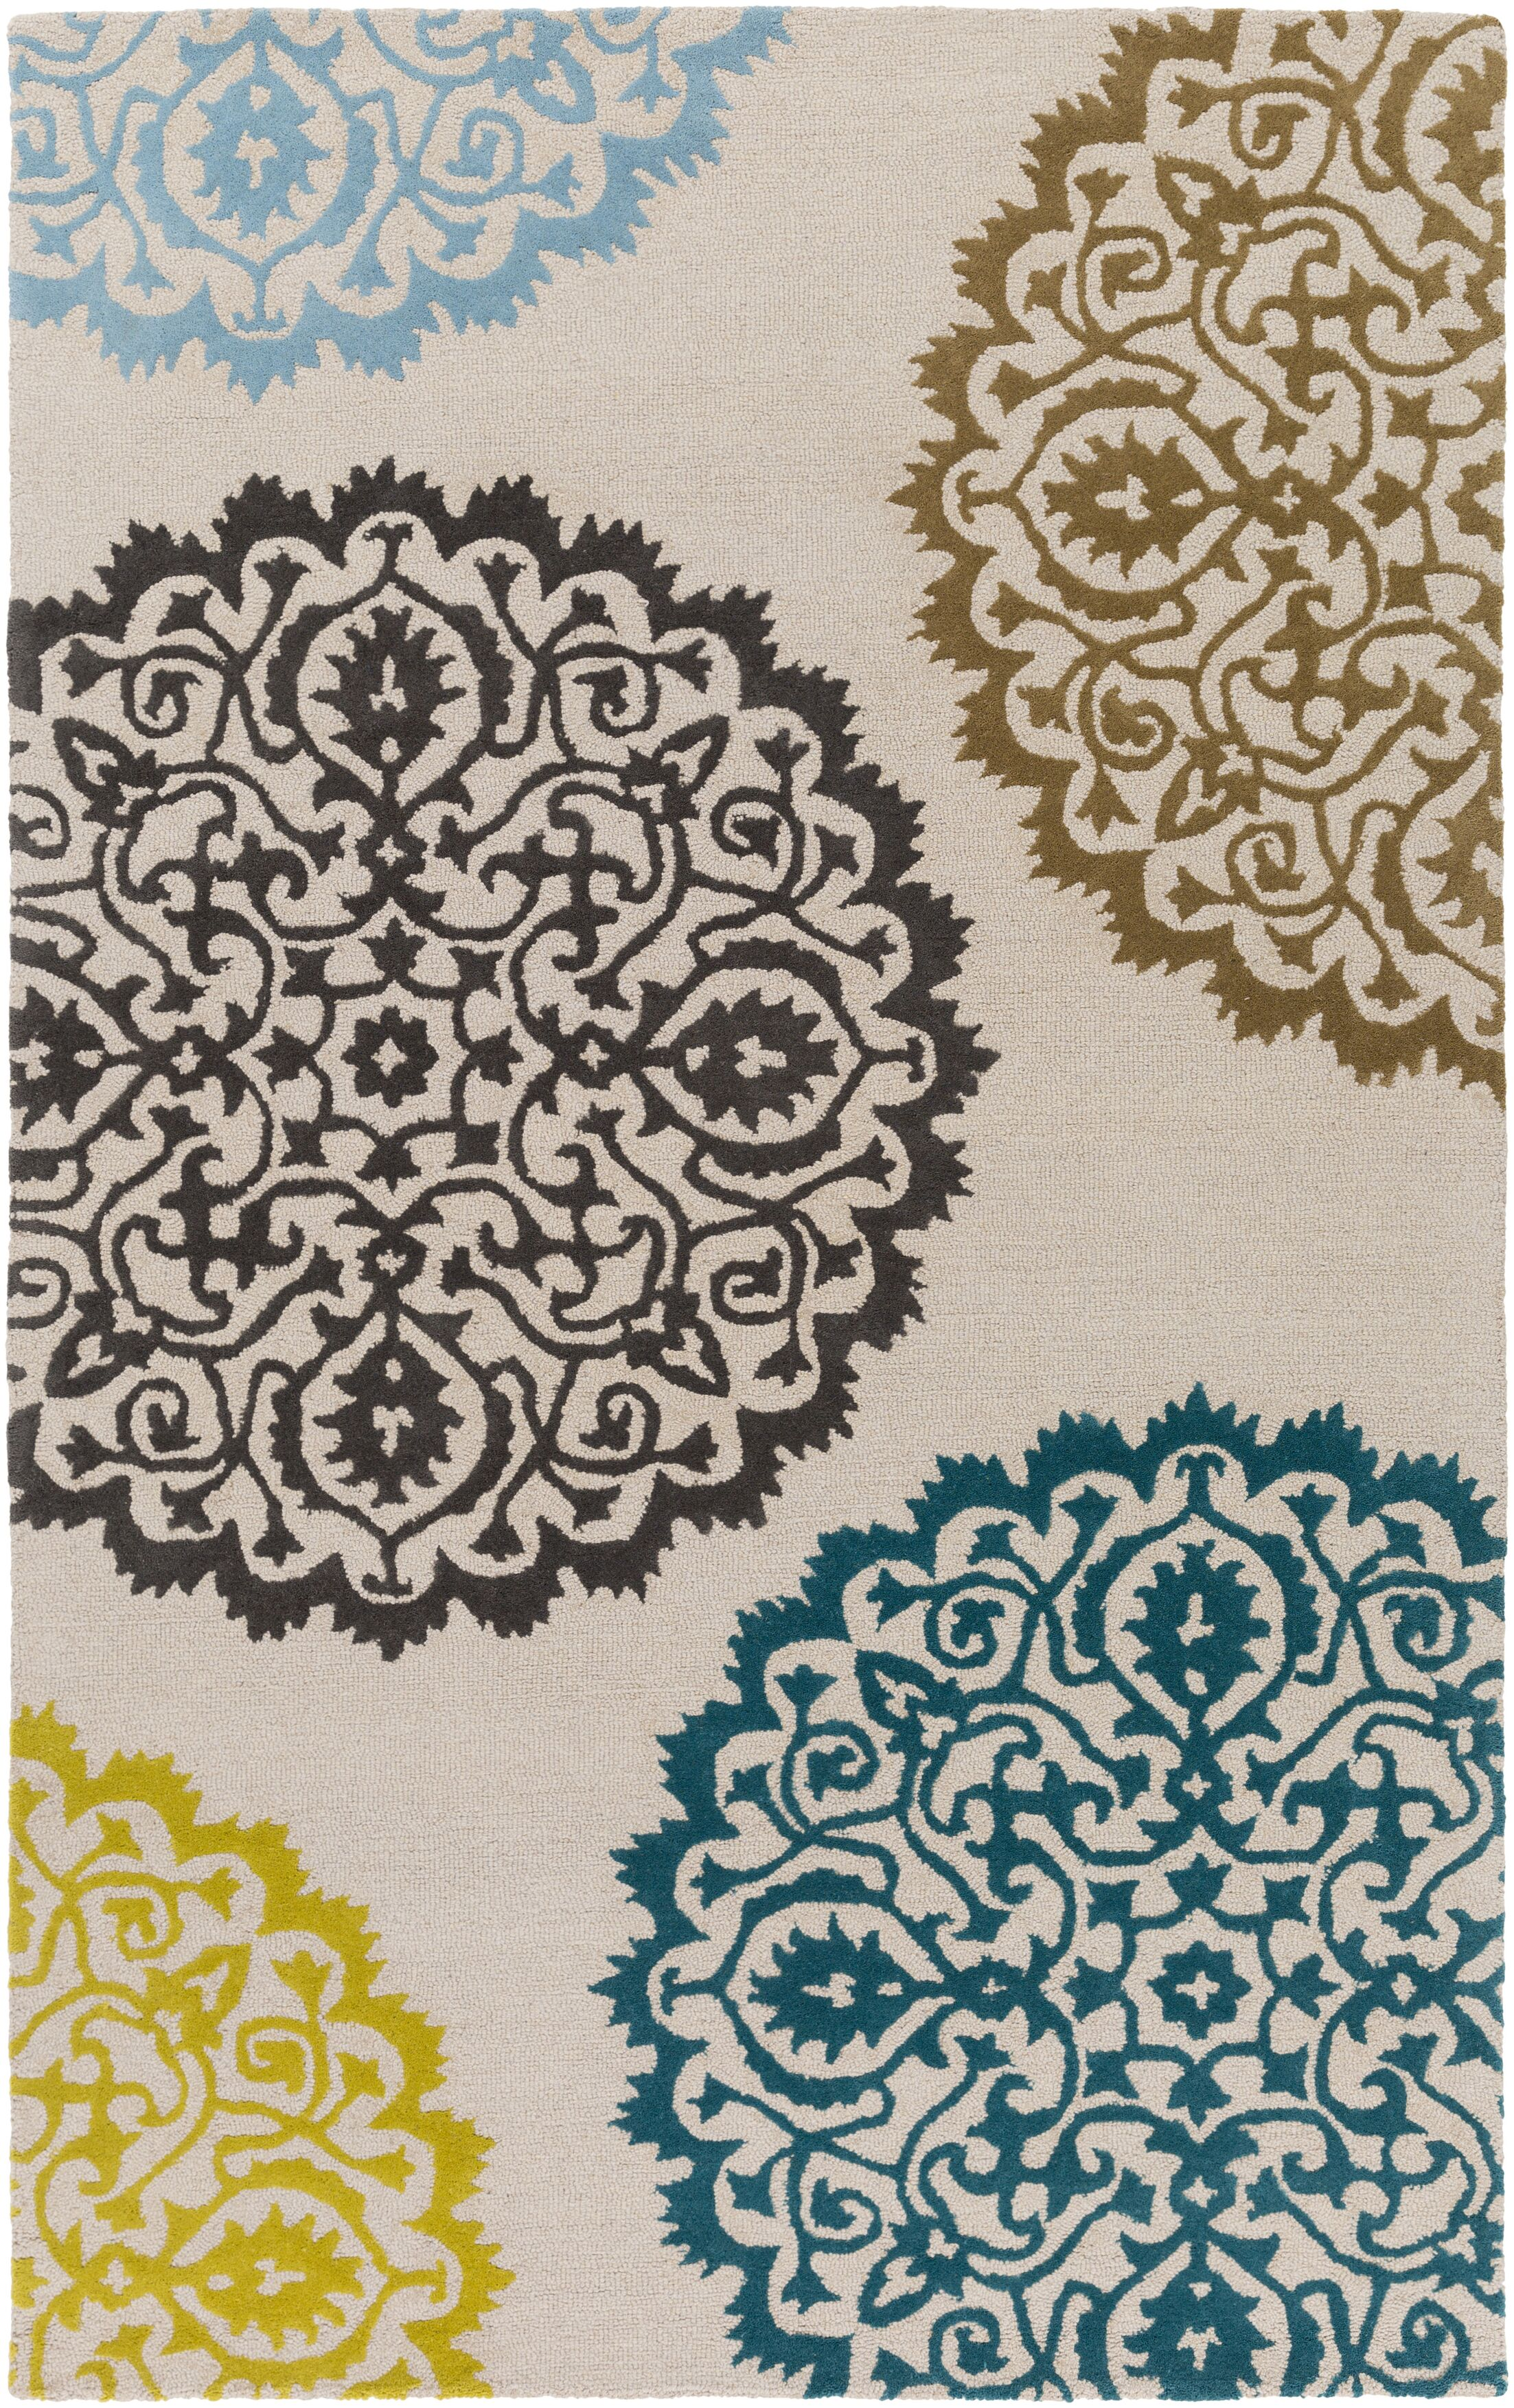 Couture Hand-Tufted Beige Area Rug Rug Size: Rectangle 4' x 6'